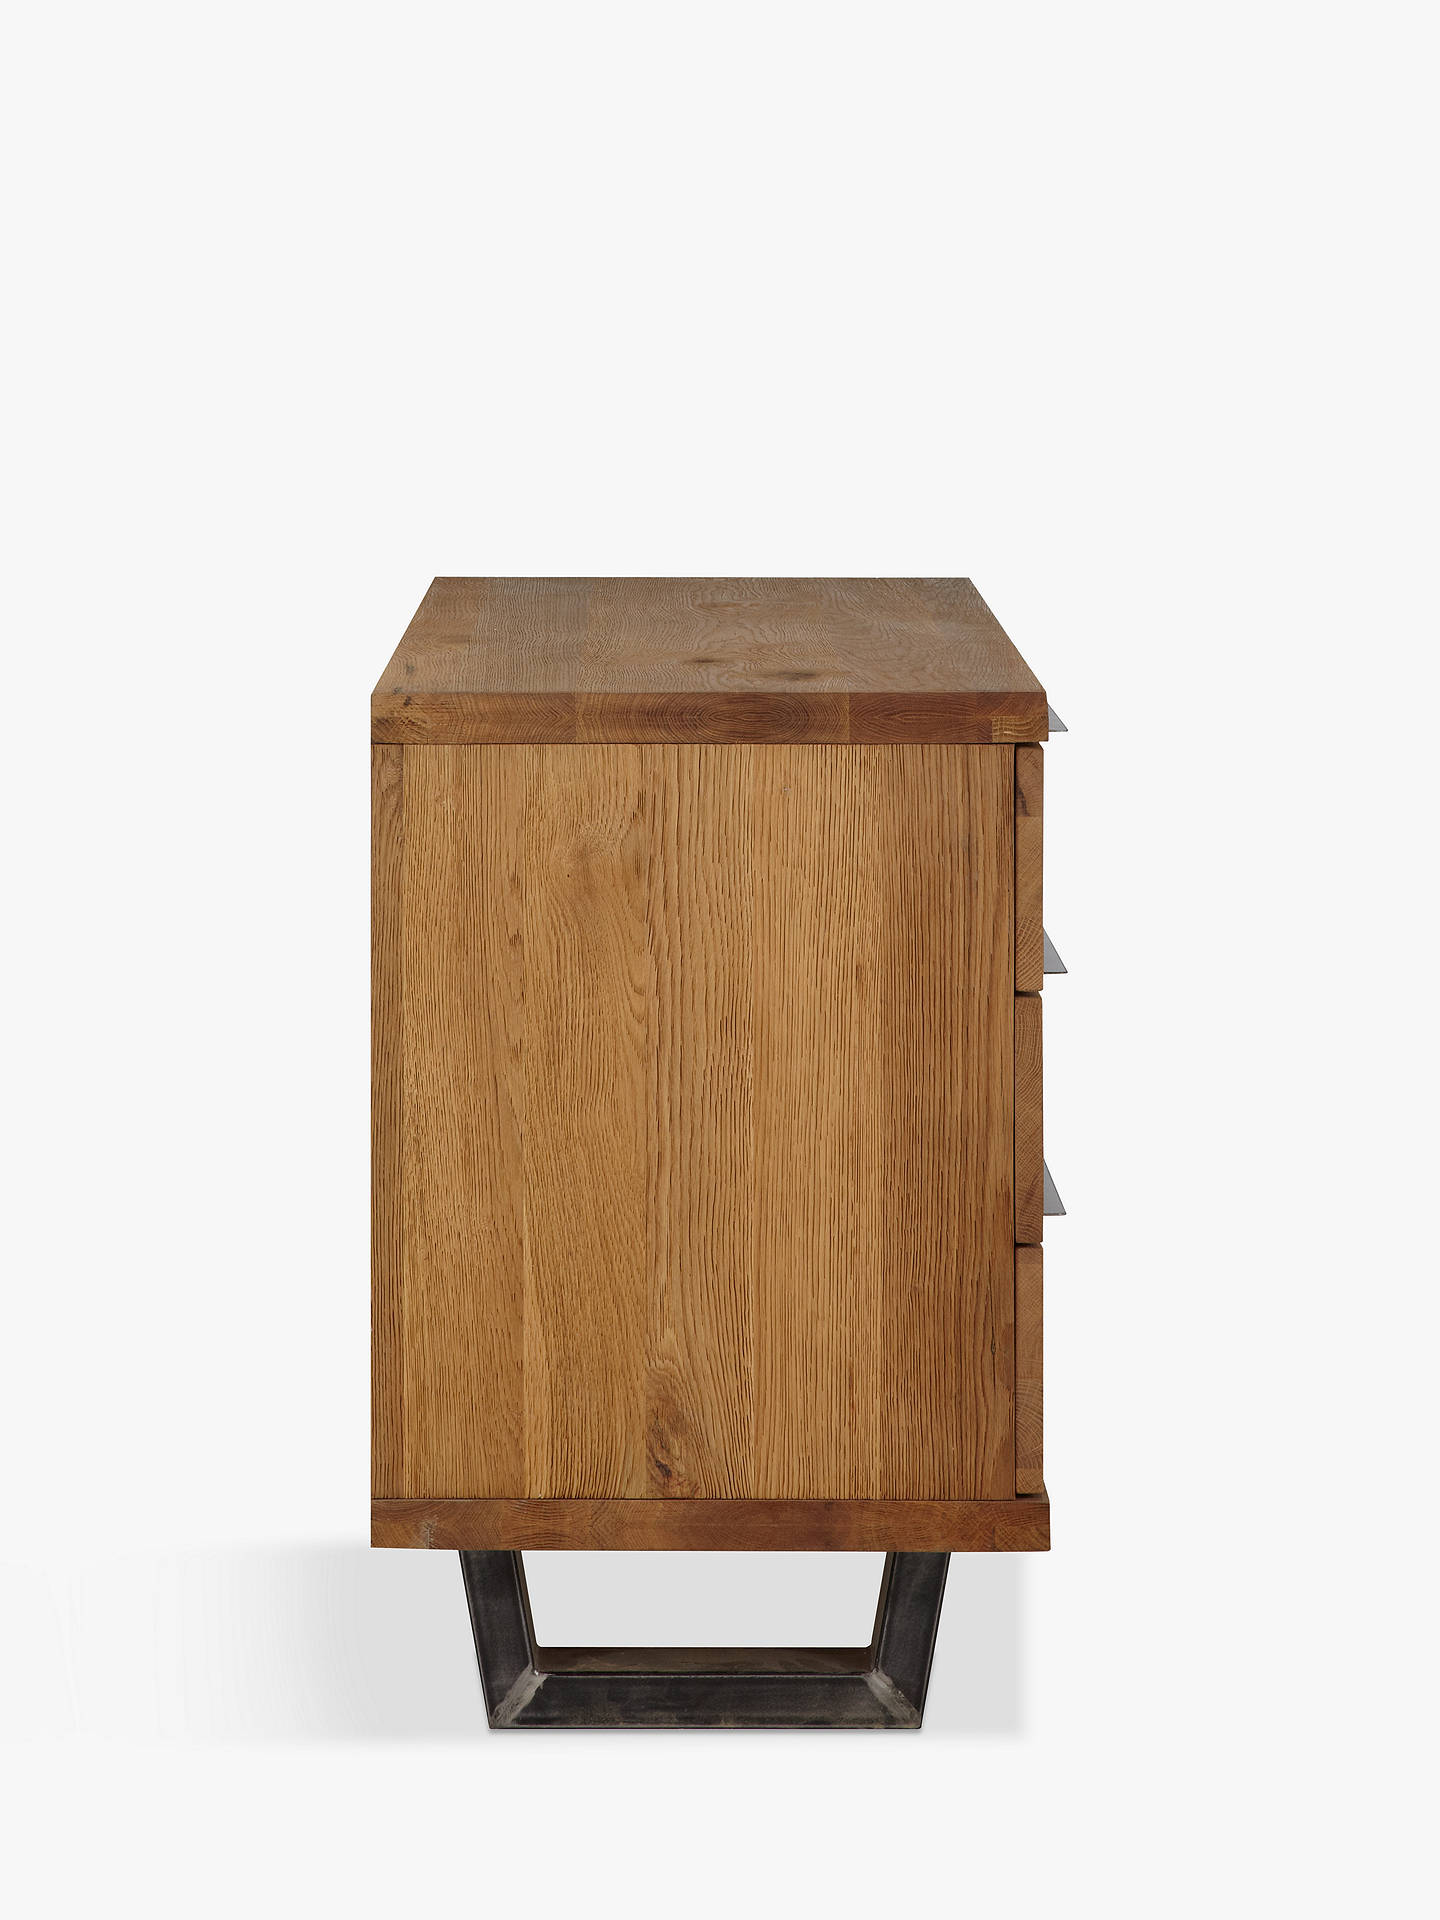 John Lewis& Partners Calia Small Sideboard at John Lewis& Partners